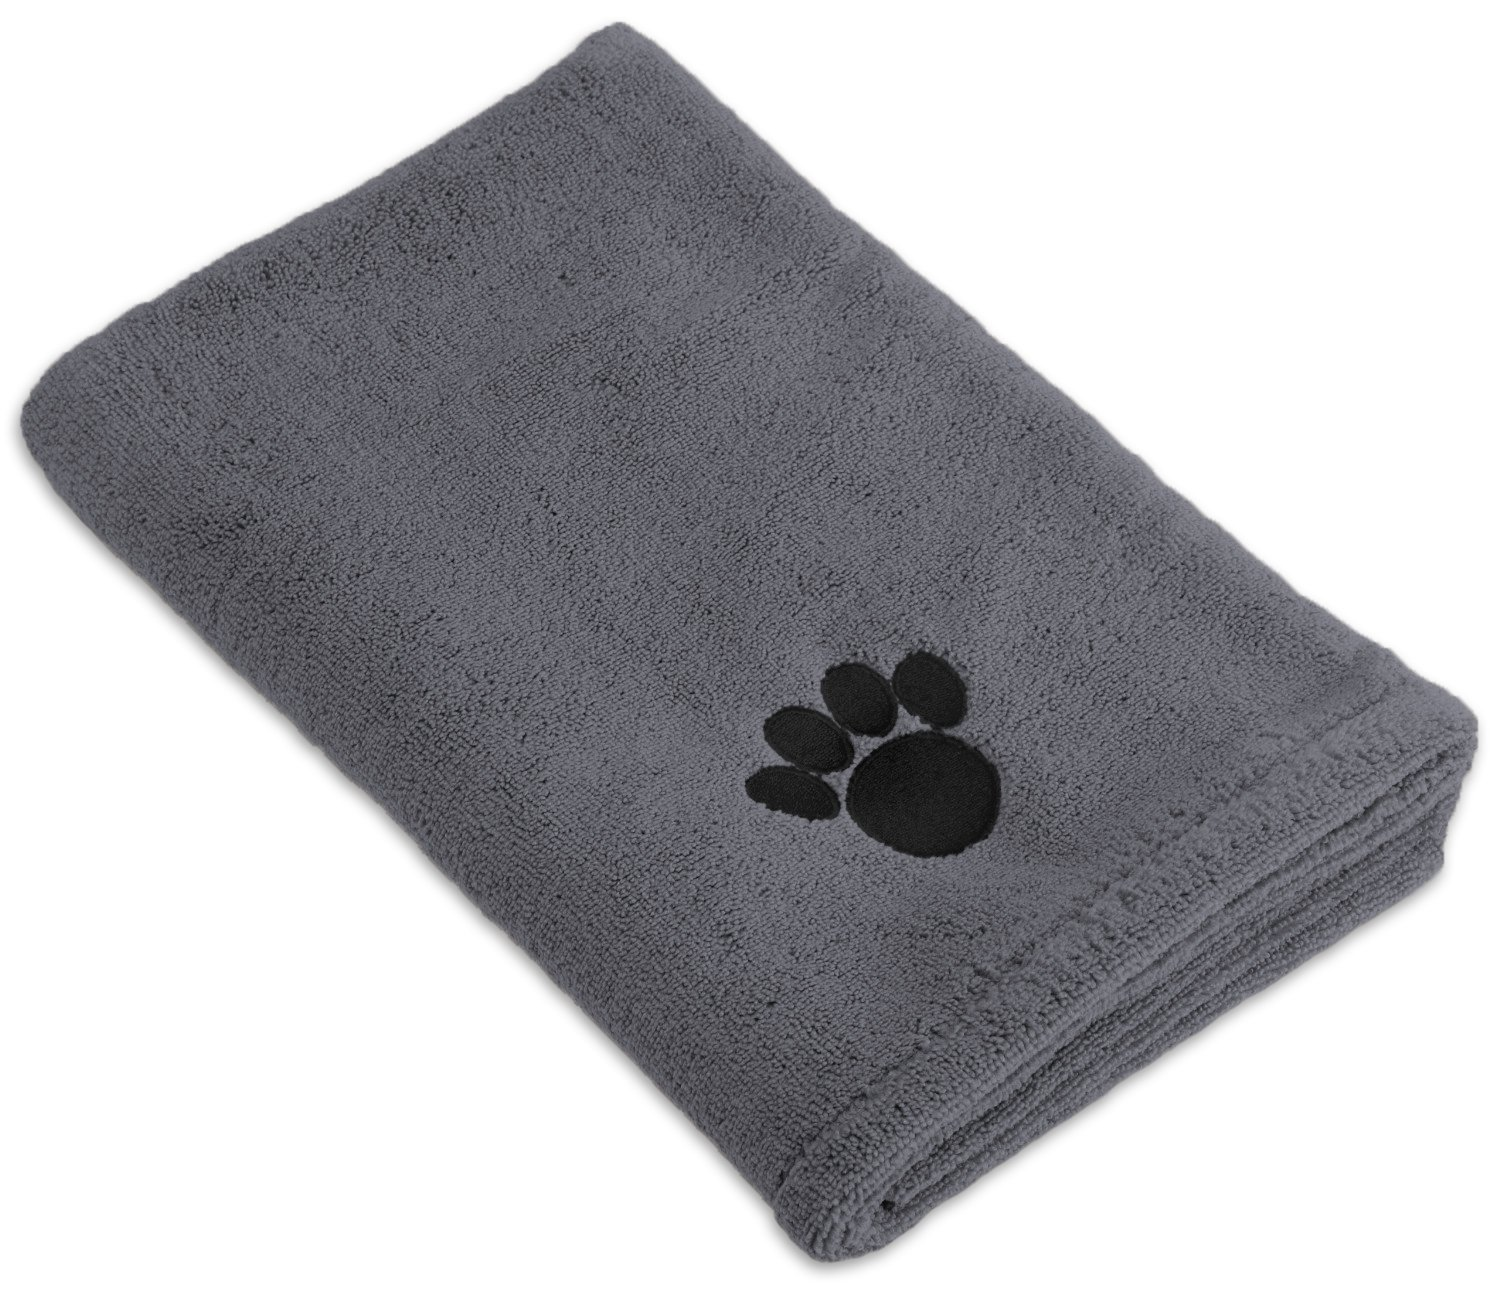 DII Bone Dry Microfiber Dog Bath Towel with Embroidered Paw Print, 44 x 27.5″, Gray review